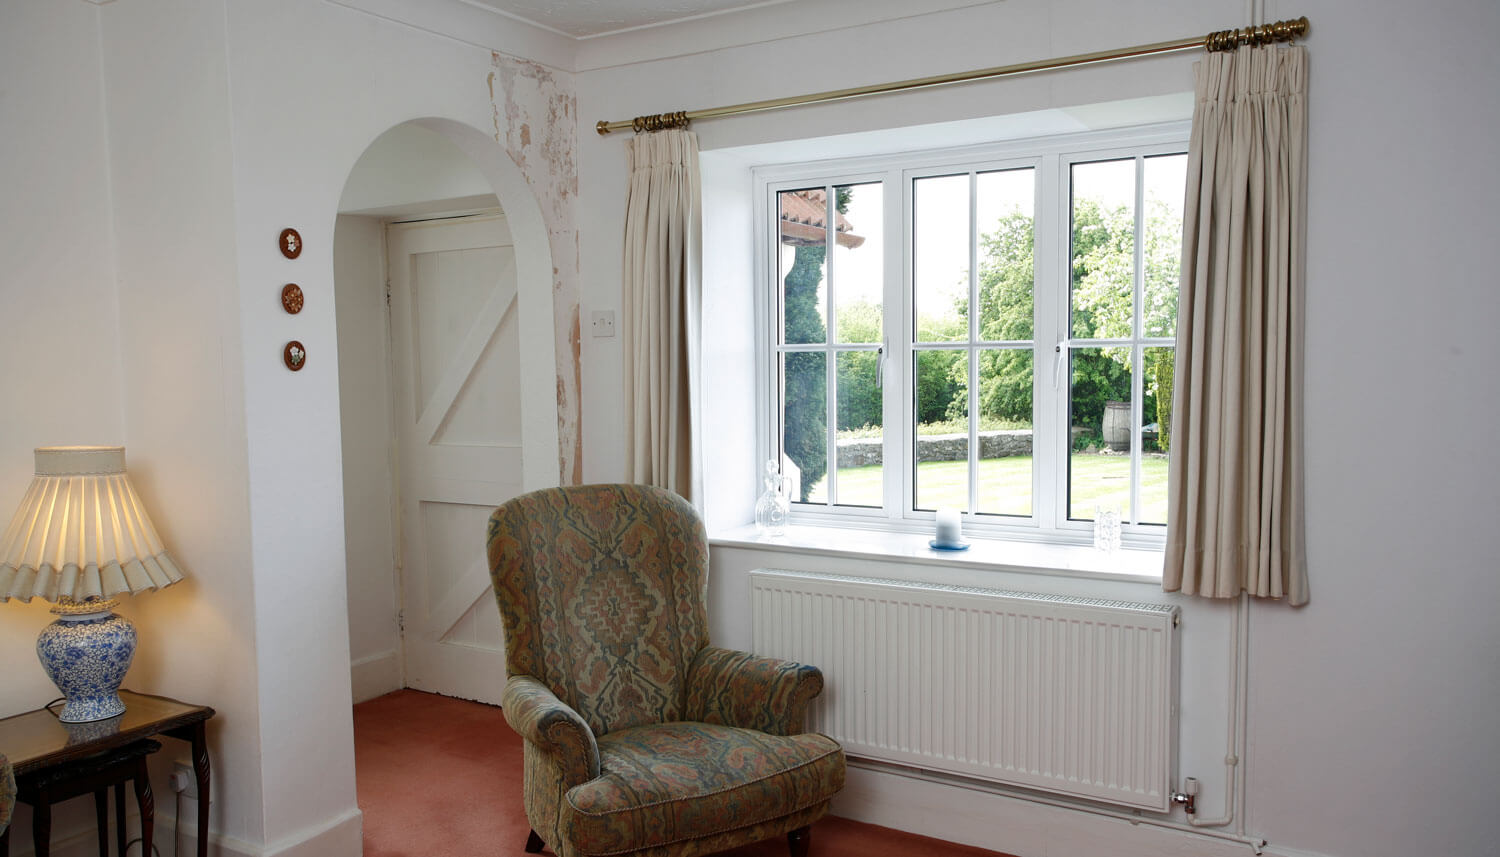 Double Glazed Windows Groes-faen